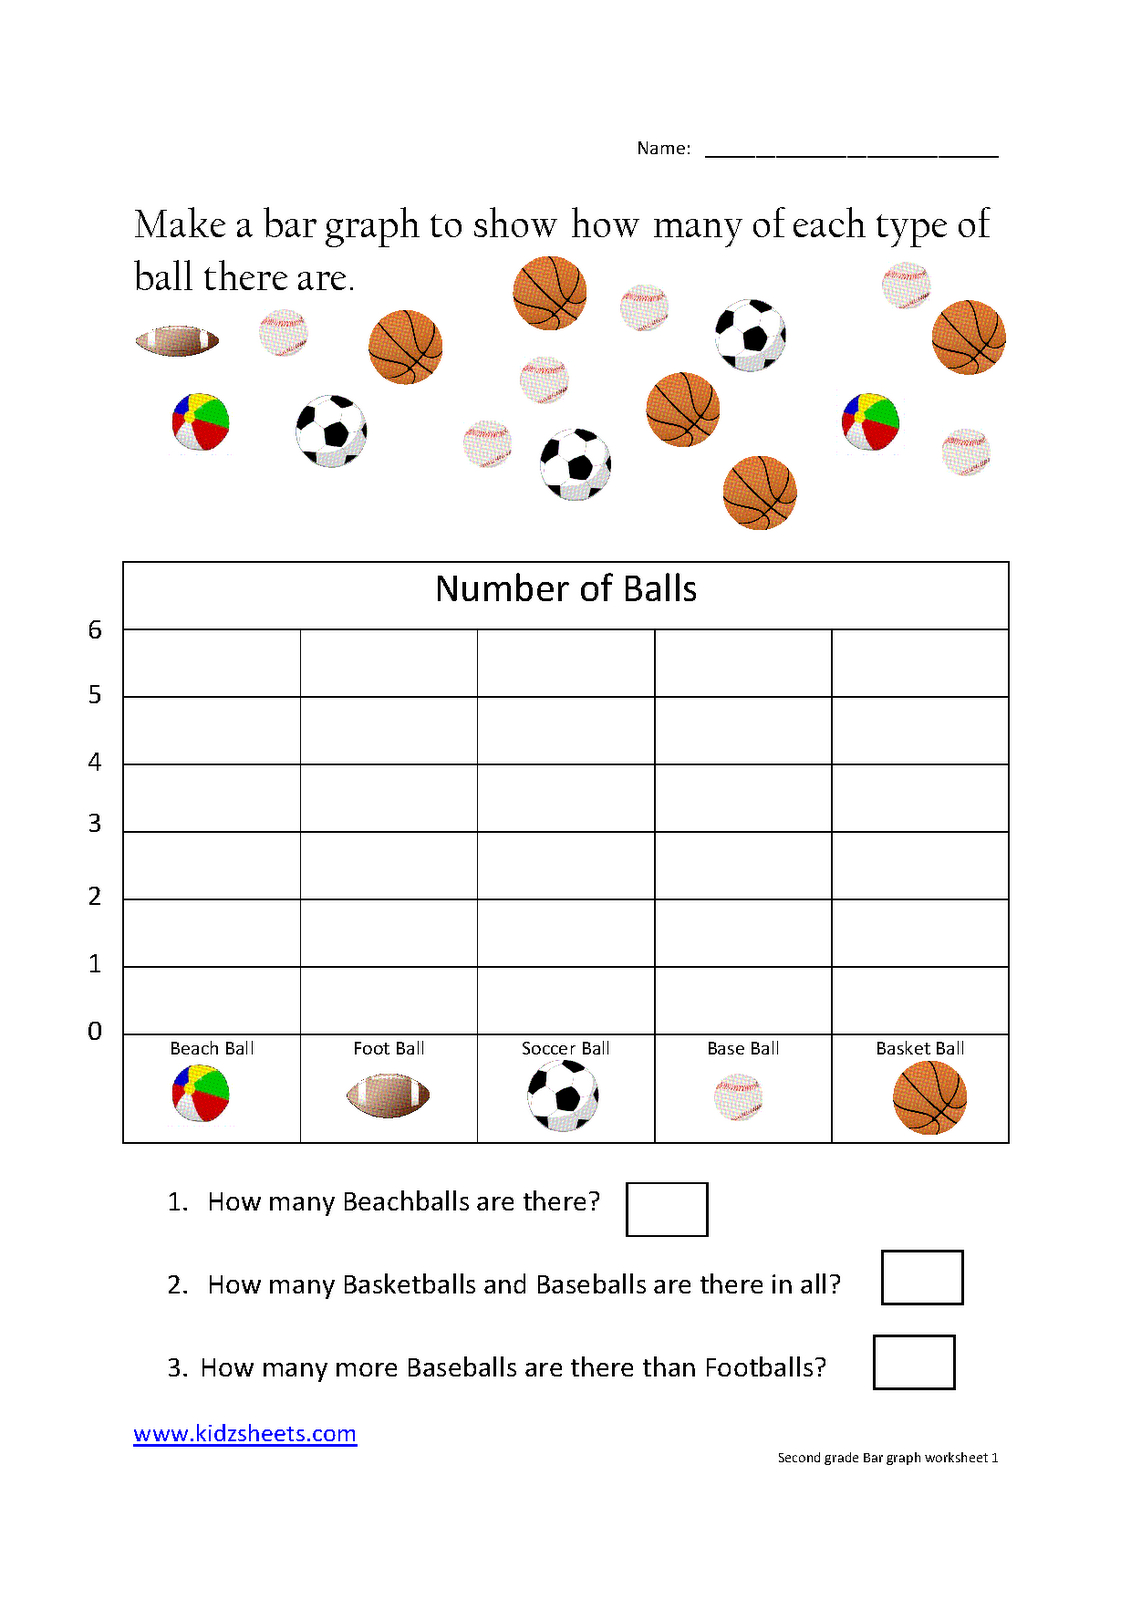 Kidz Worksheets: Second Grade Bar Graph Worksheet1 | School - Free Printable Bar Graph